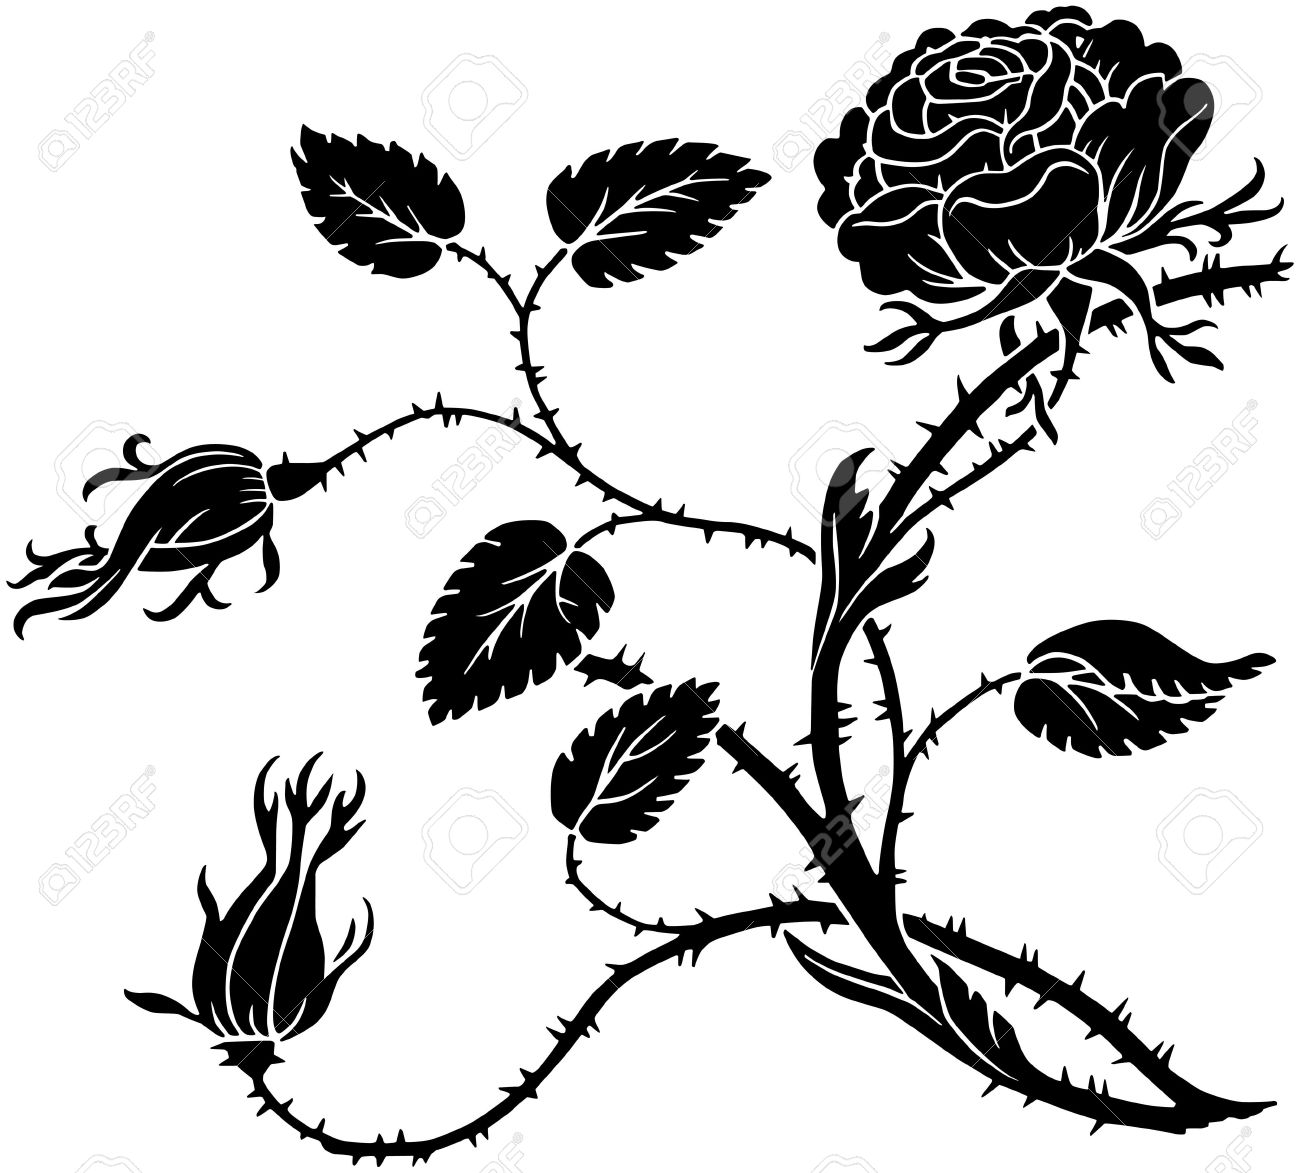 1300x1173 Thorny Rose Royalty Free Cliparts, Vectors, And Stock Illustration